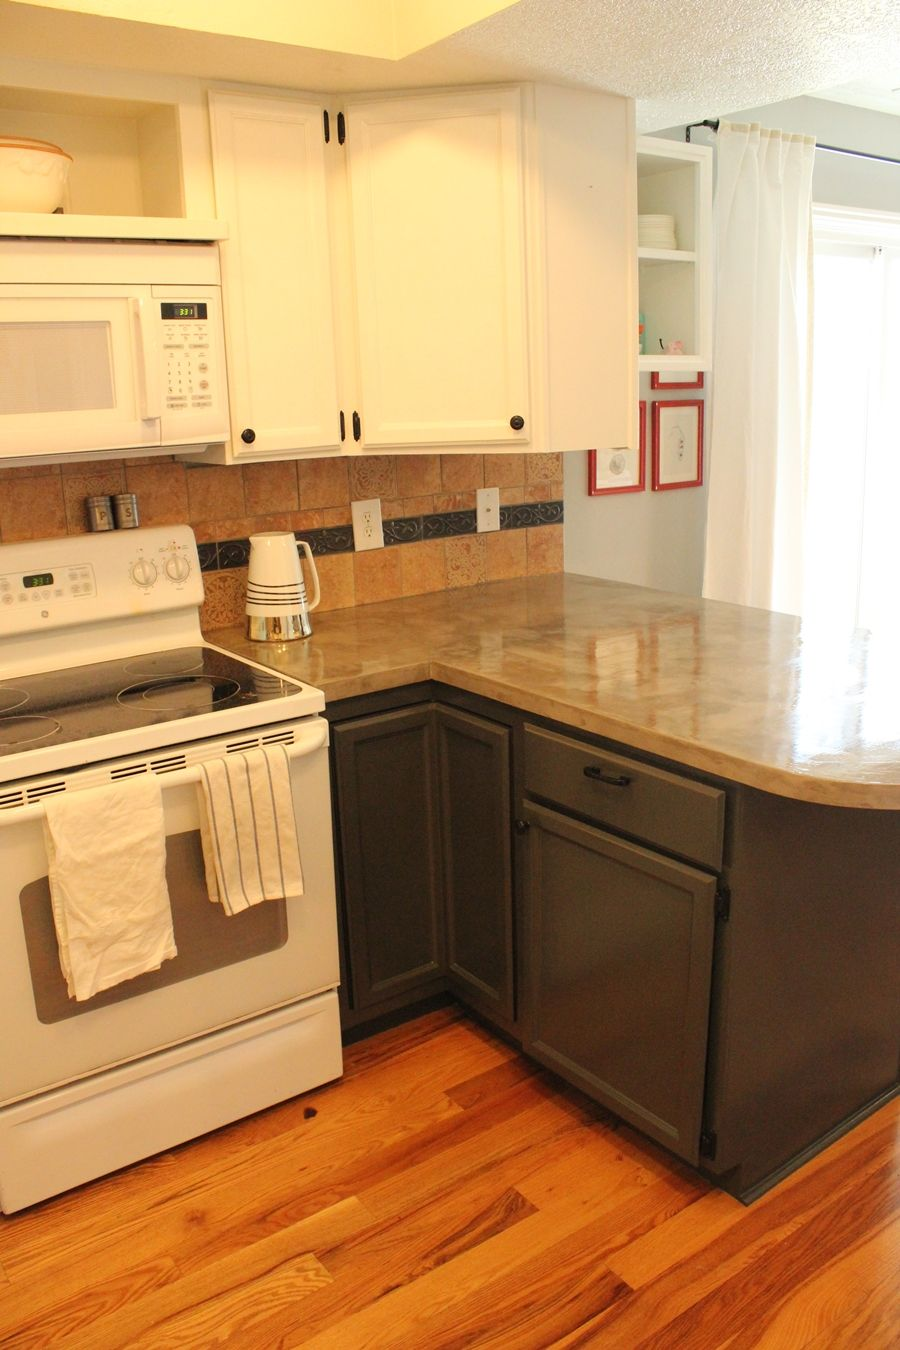 1572962495 998 easy diy remodels that add value to your home - Easy DIY Remodels that Add Value to Your Home